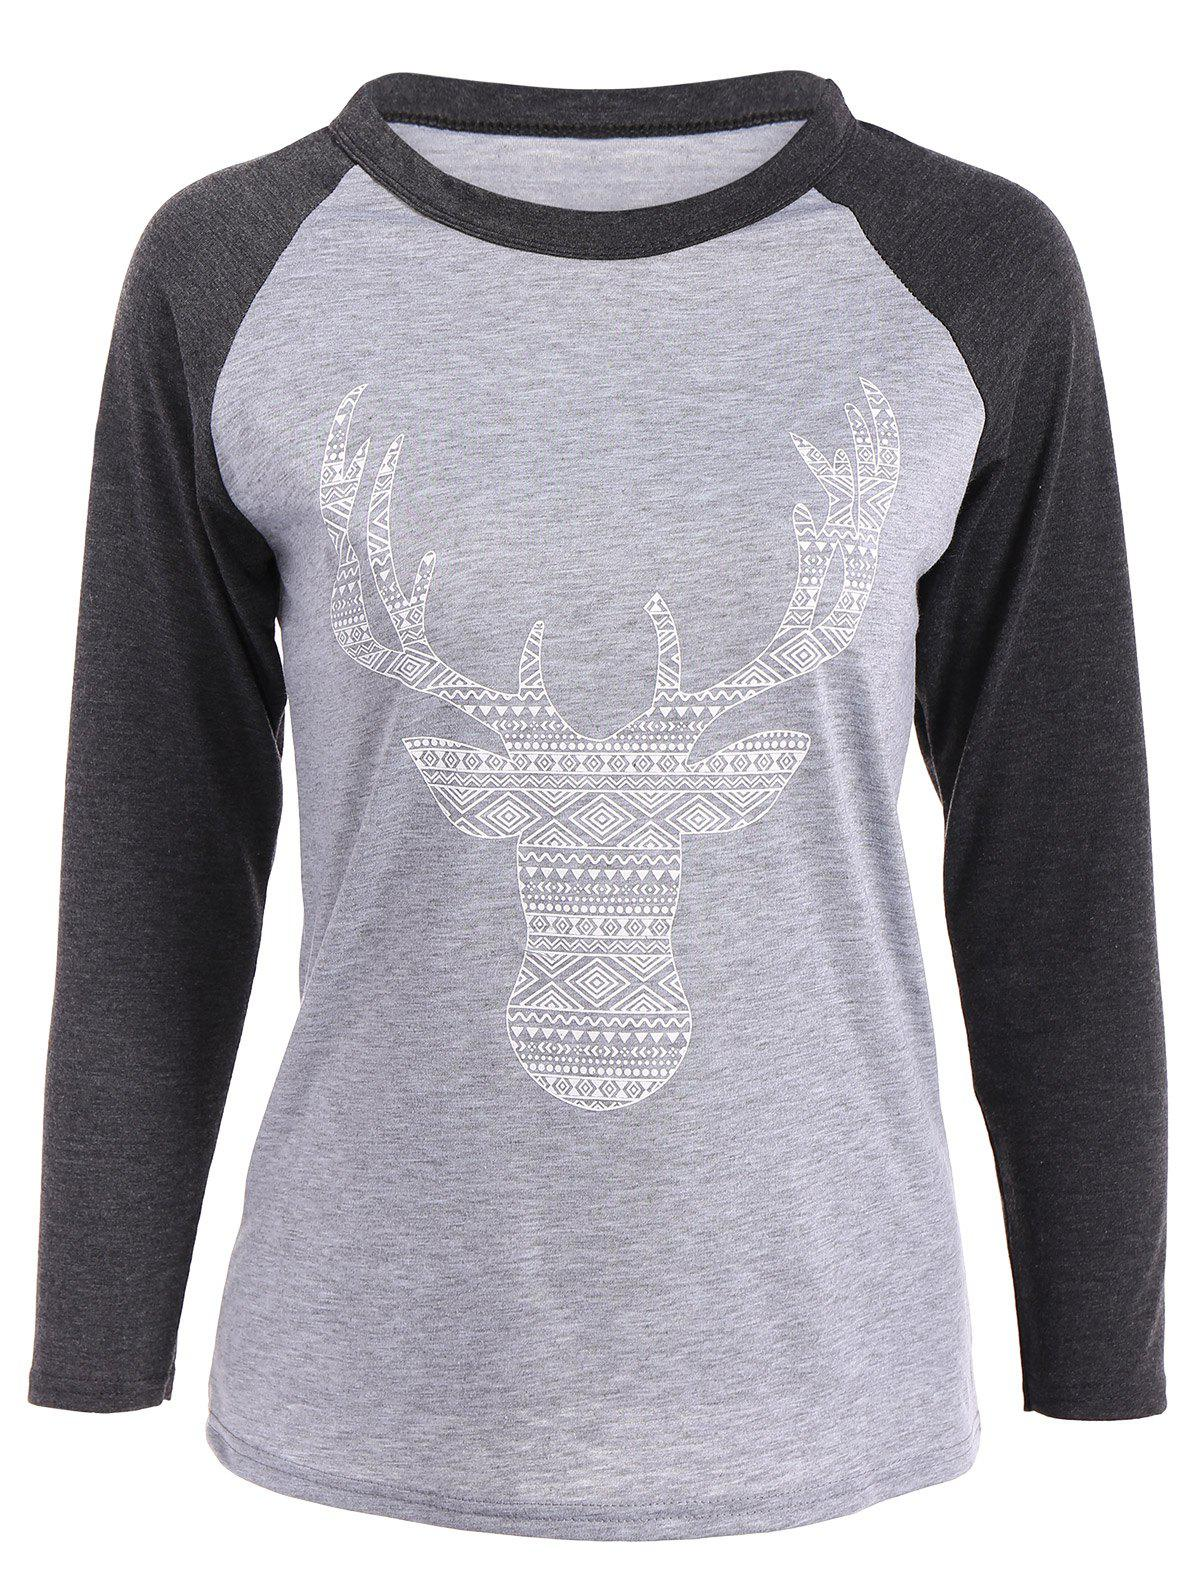 Shops Elk Patterned Raglan Sleeves T-Shirt